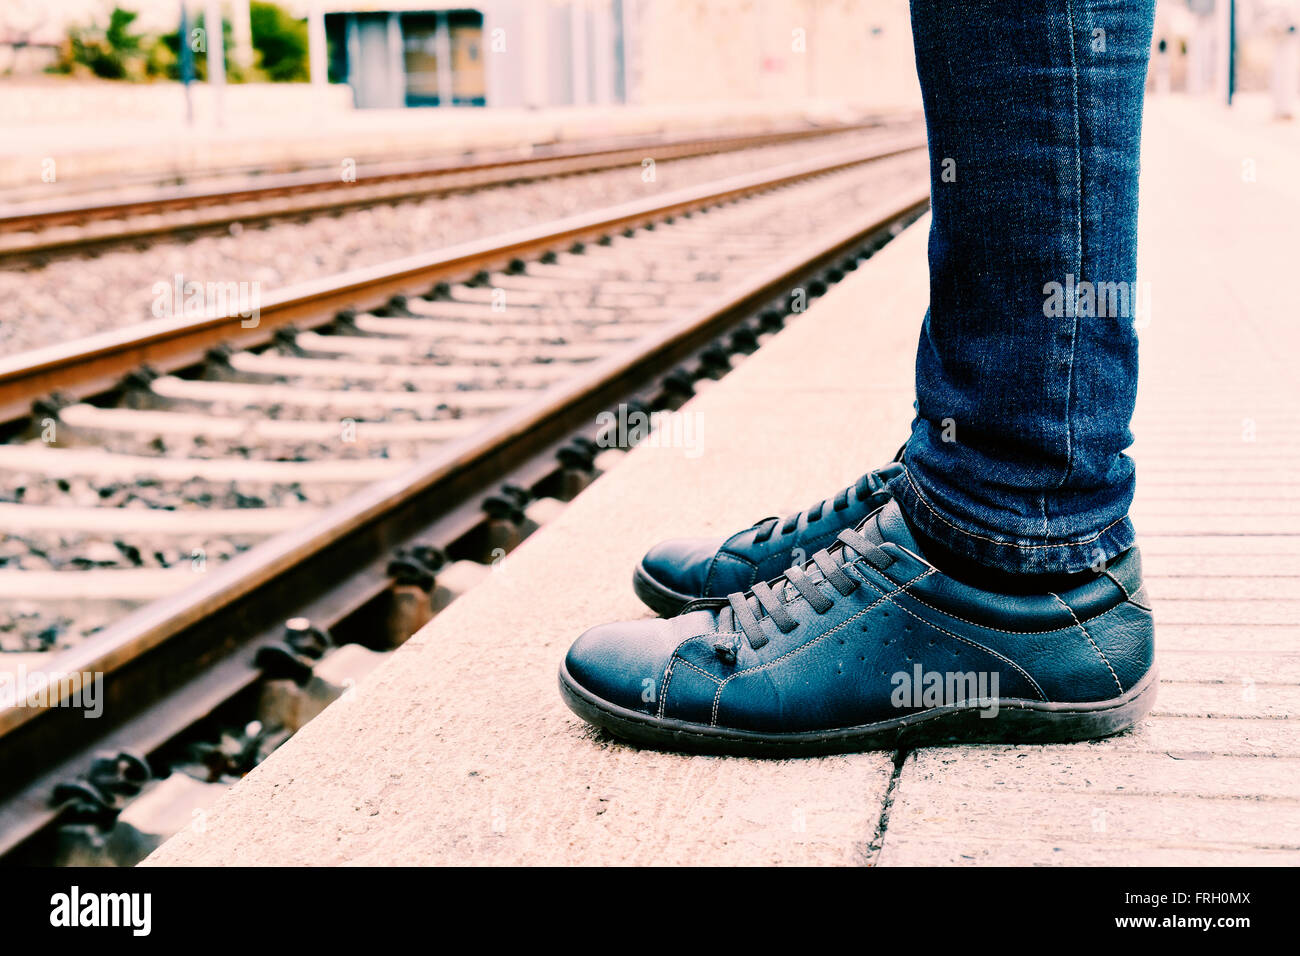 closeup of the feet of a young man wearing jeans who is waiting for the train at the platform of the train station - Stock Image